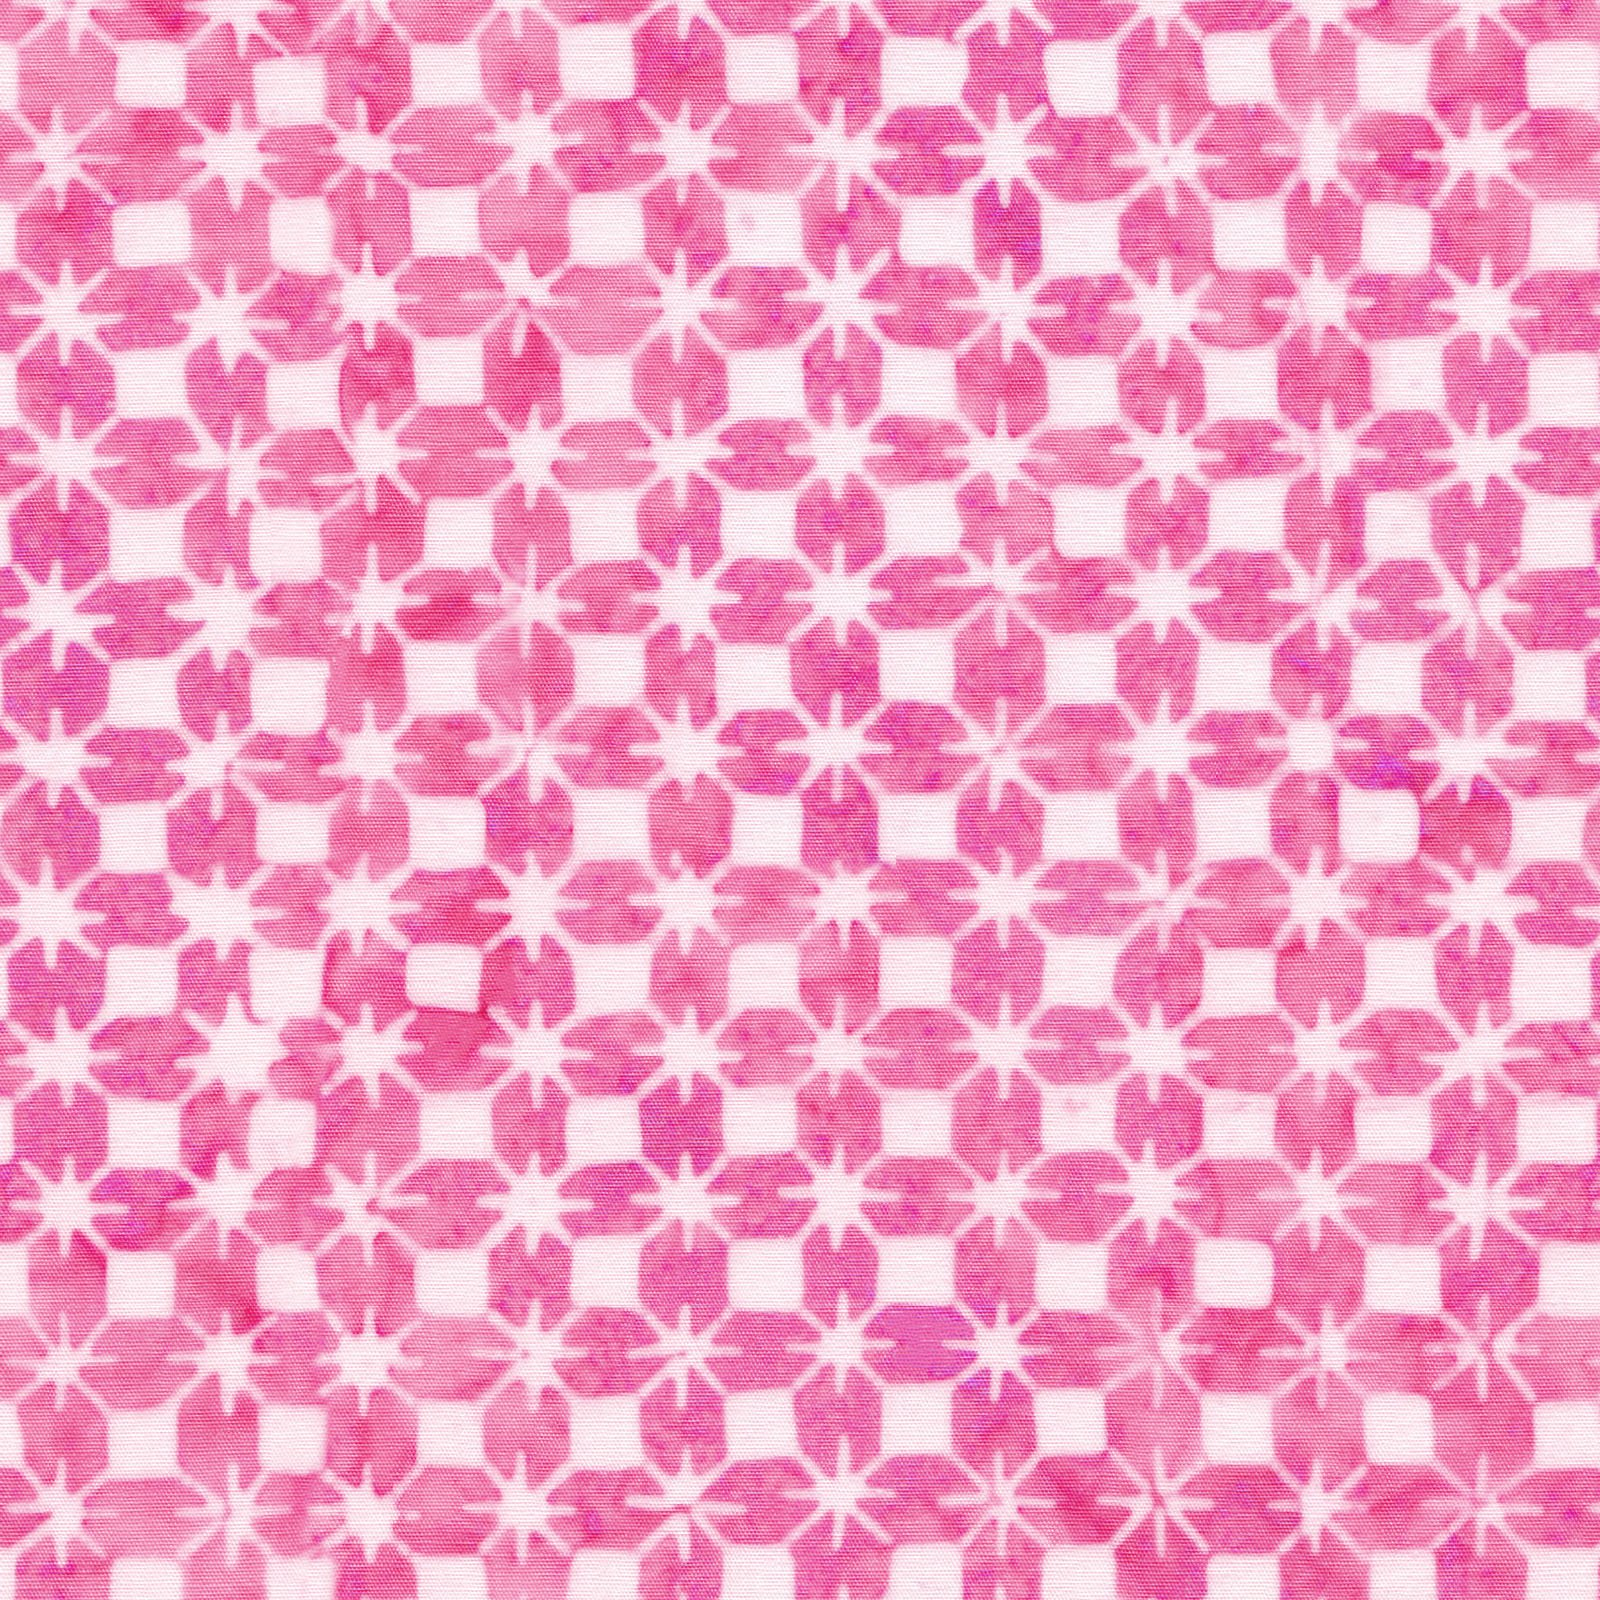 EESC-B55 PW - COLOR THERAPY BATIKS BY MAYWOOD STUDIO STARS PINK/WHITE - ARRIVING DECEMBER 2020